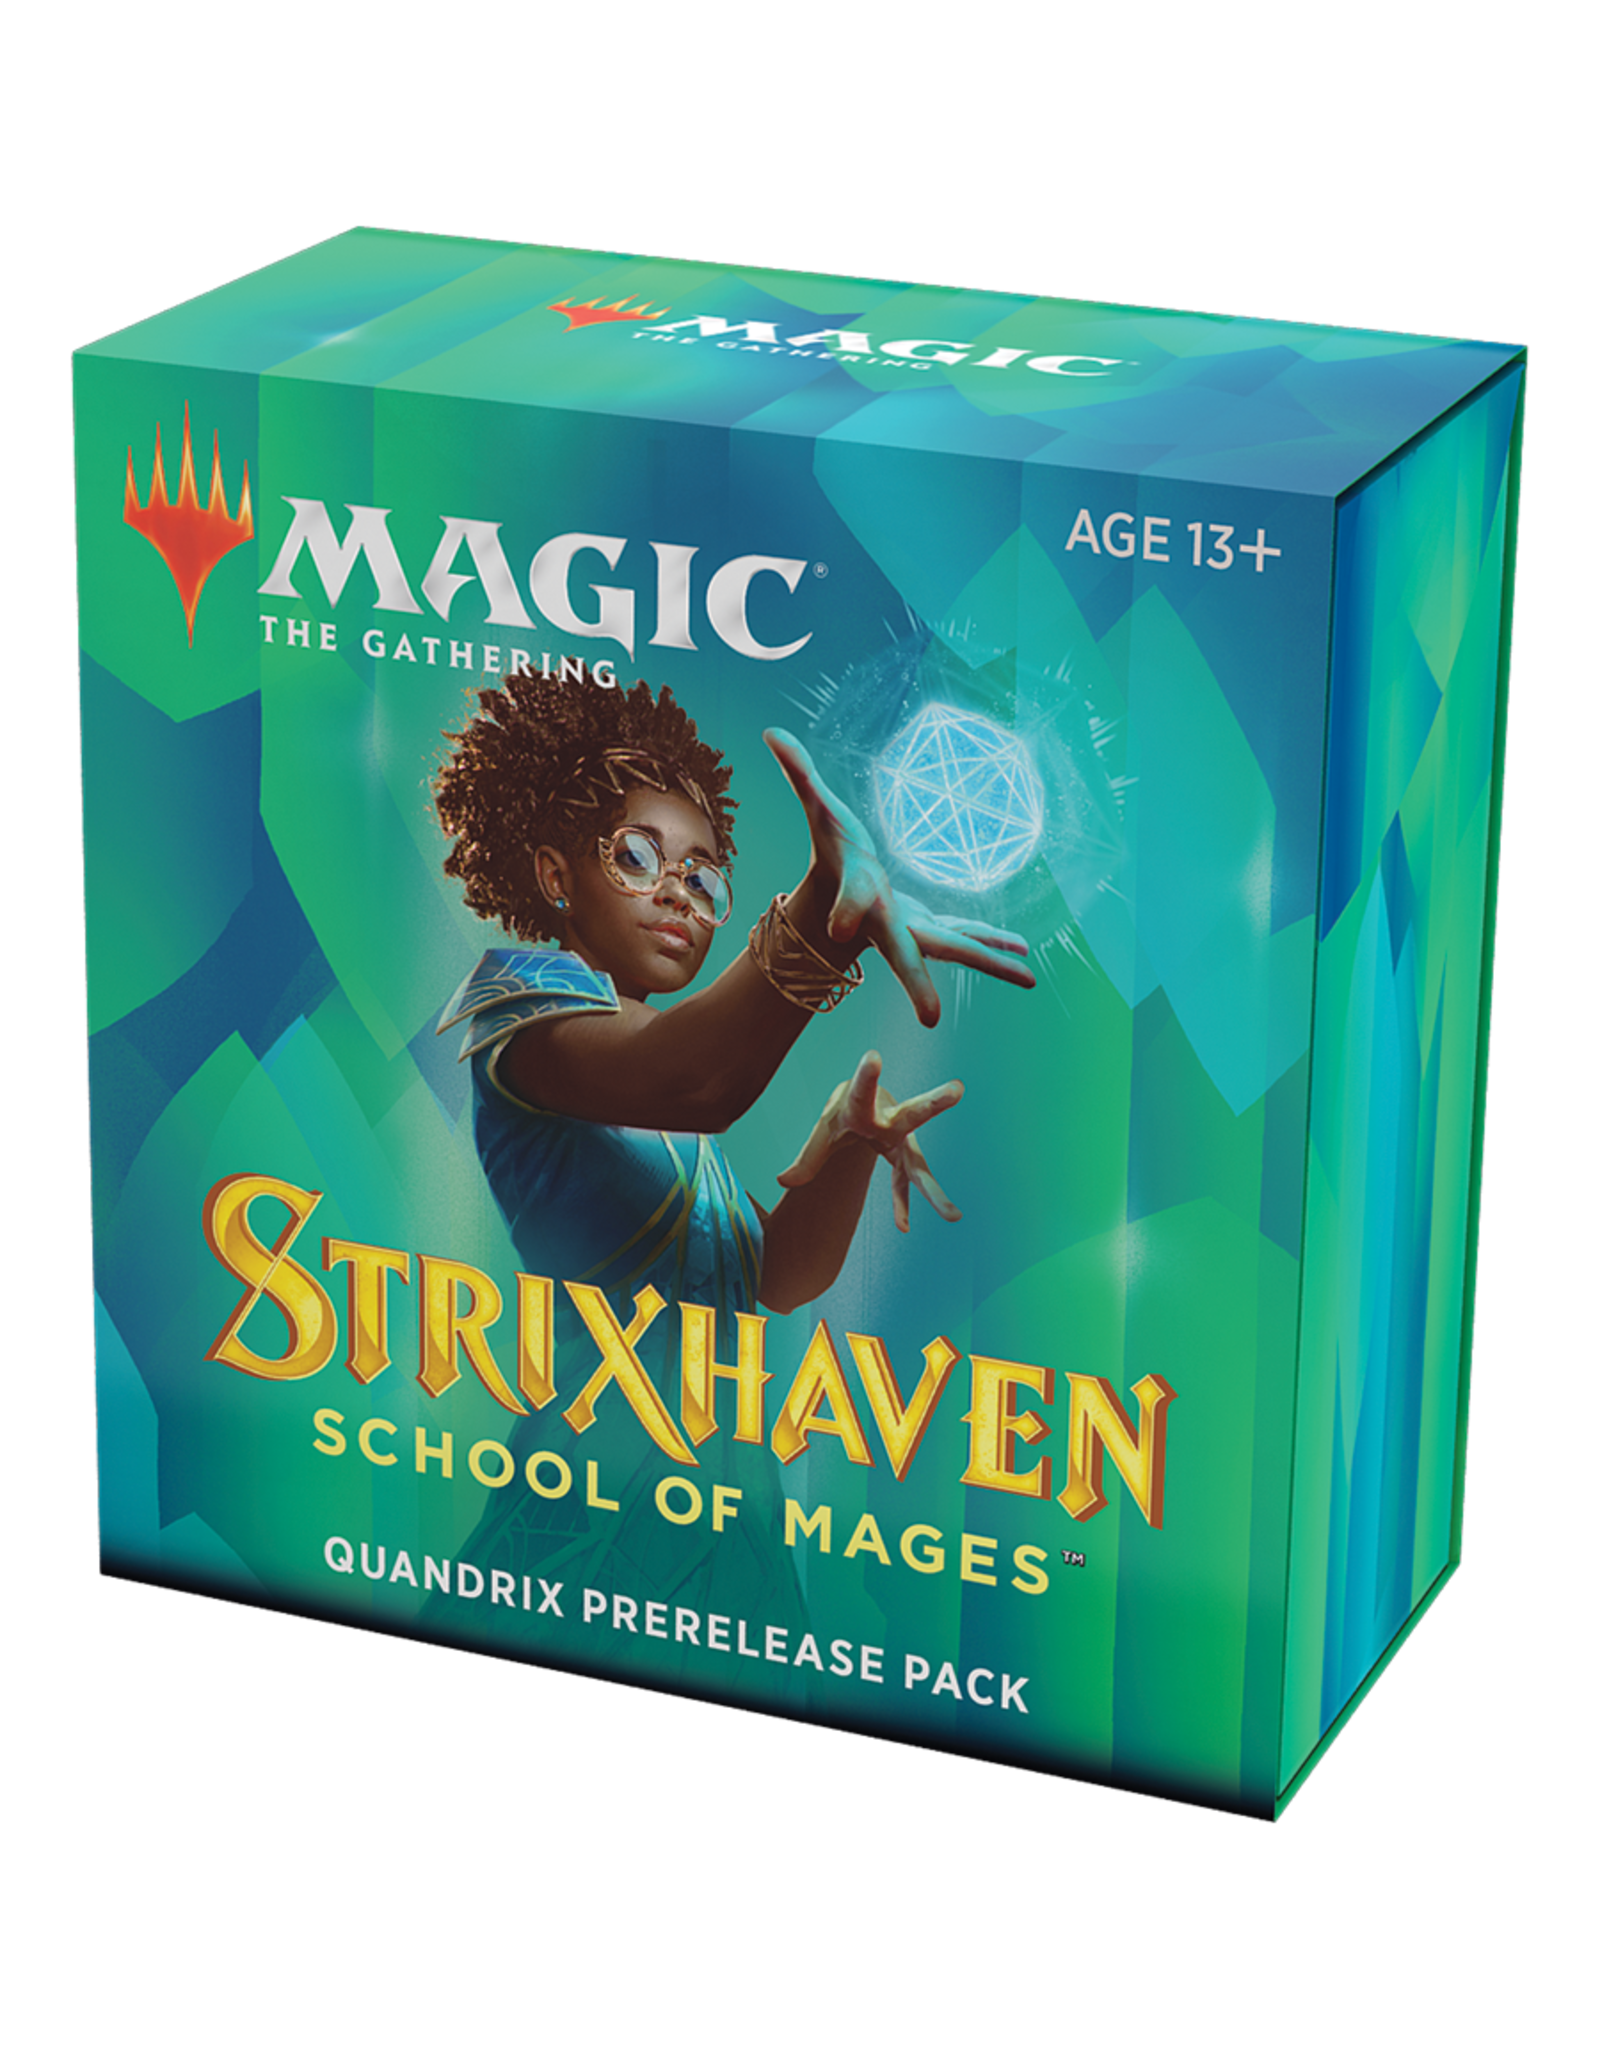 [Event] [Pickup Only] Magic: The Gathering - Strixhaven: School of Mages - Online Prerelease - Sunday 4/18 - Quandrix